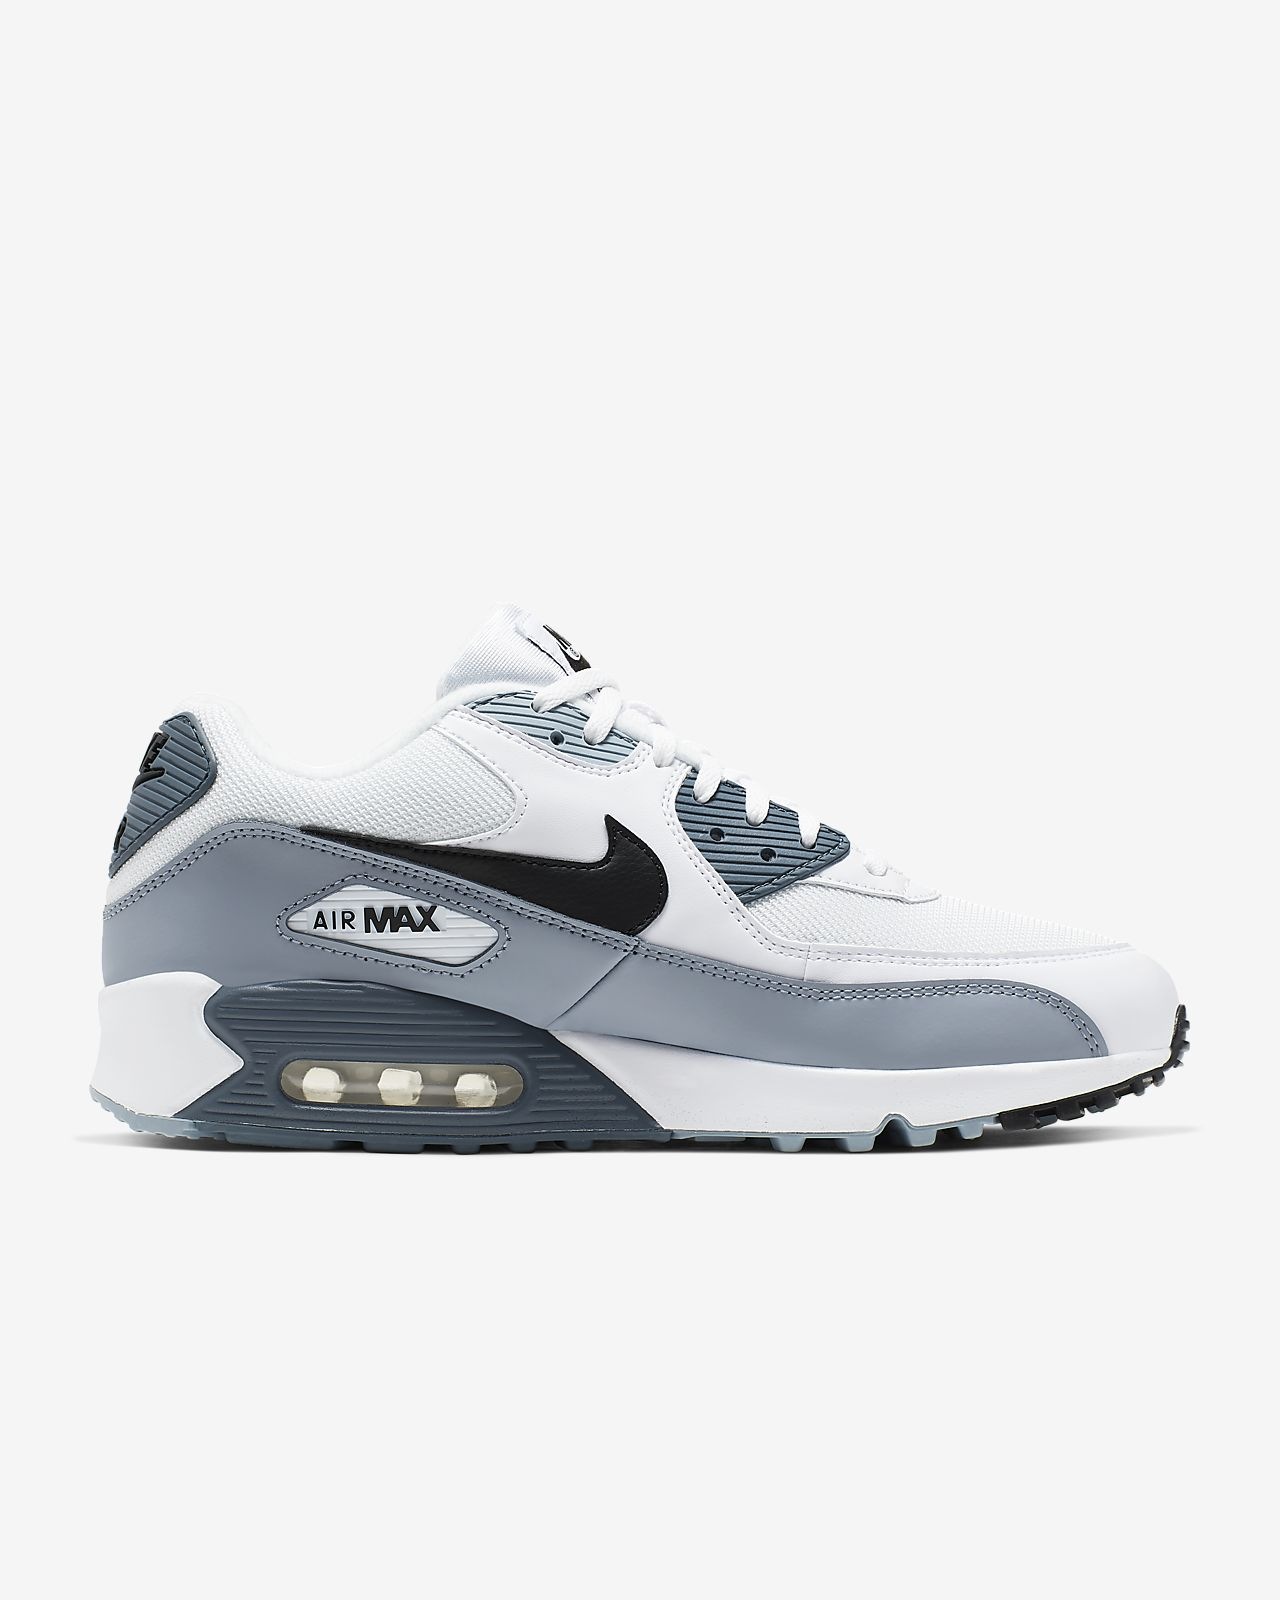 46afe03e93 Nike Air Max 90 Essential Men's Shoe. Nike.com GB